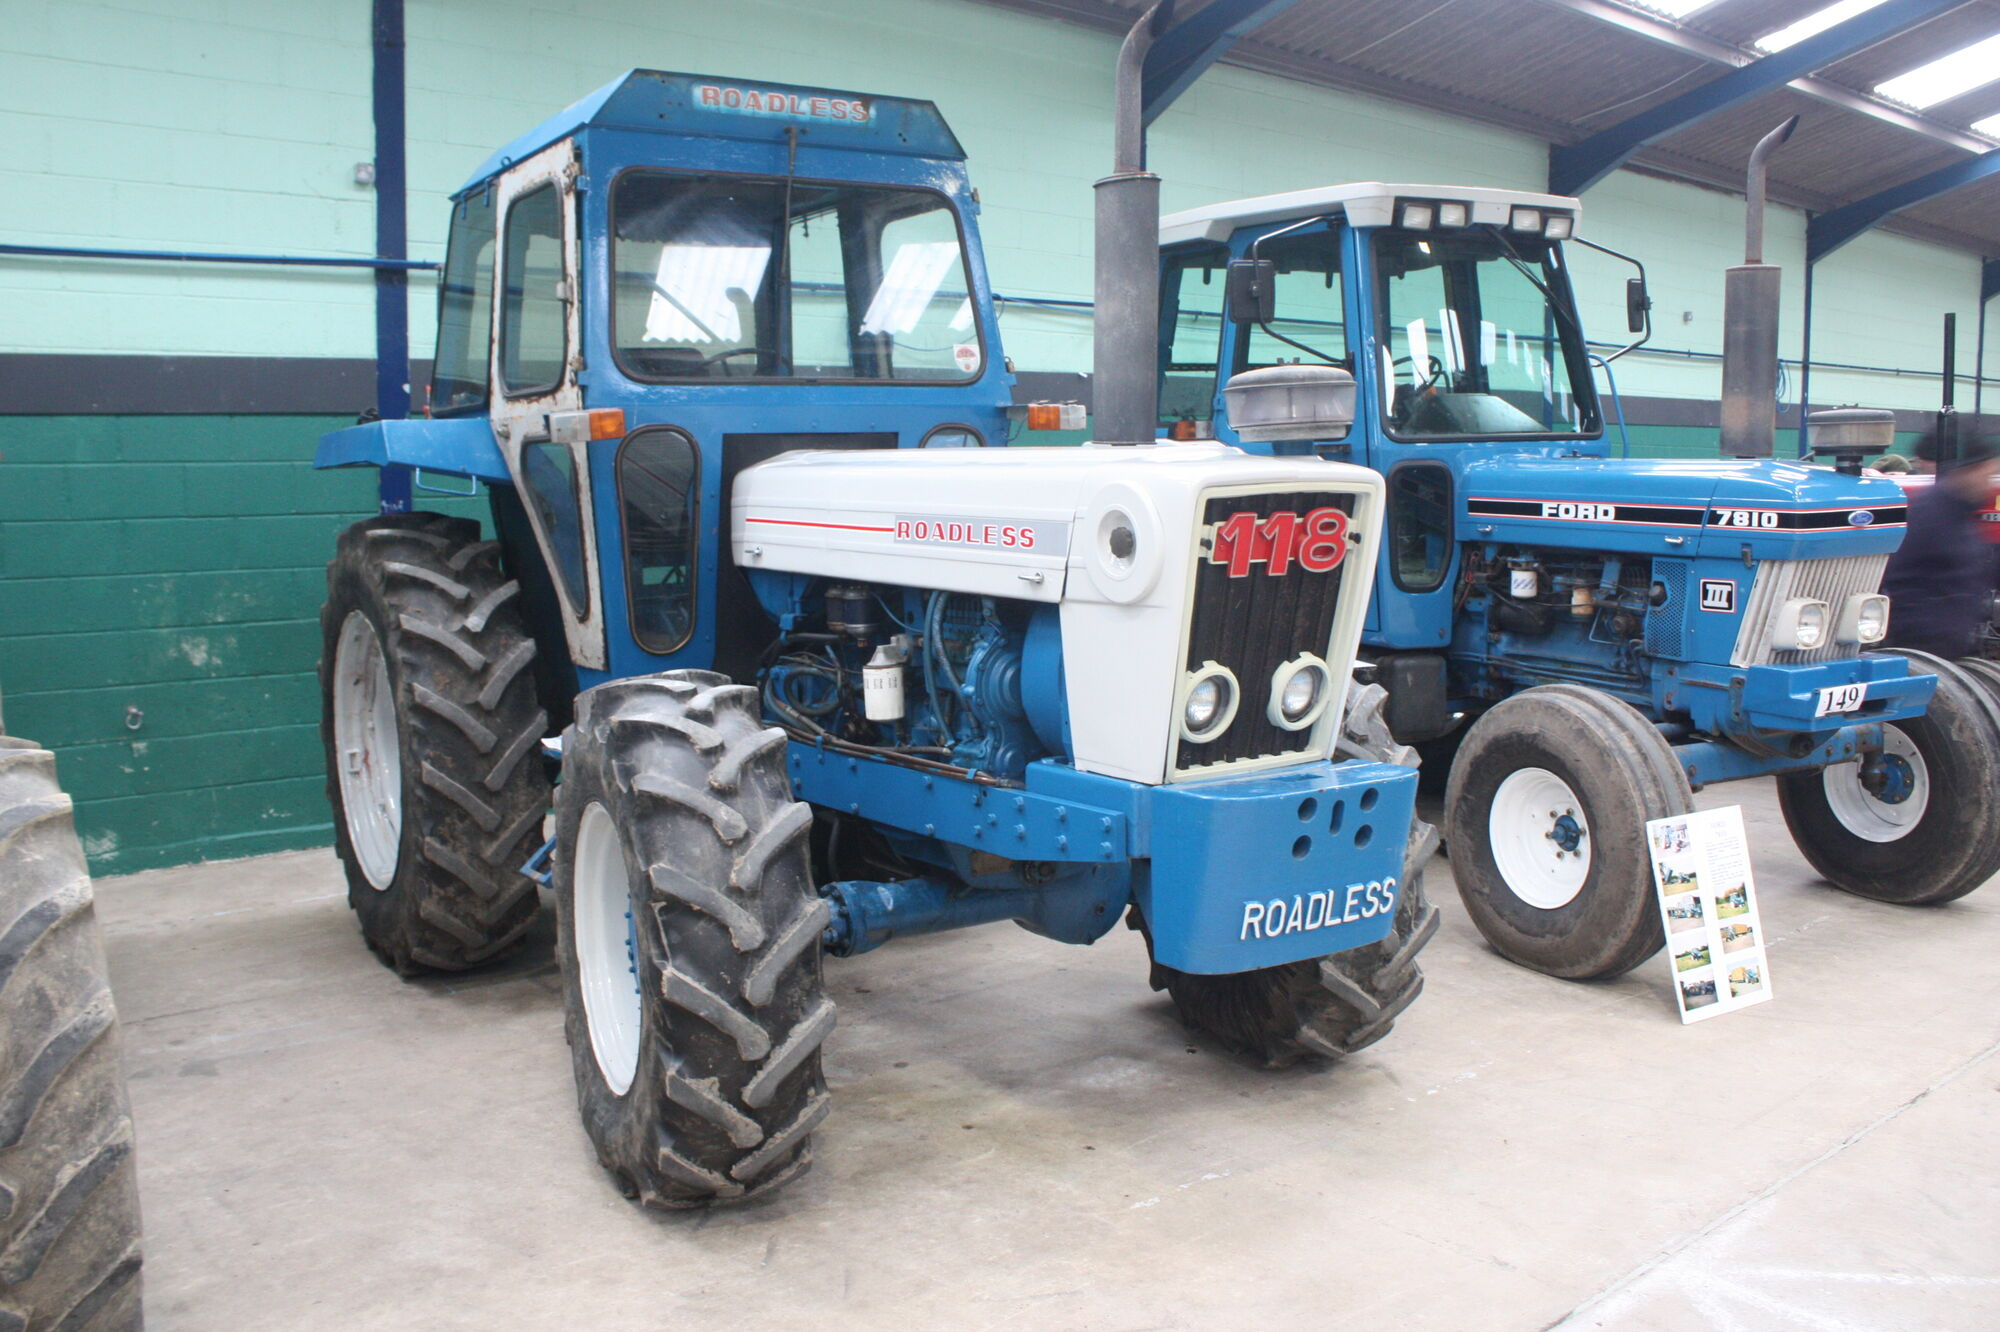 Ford 2000 Tractor Nose : Roadless tractor construction plant wiki fandom